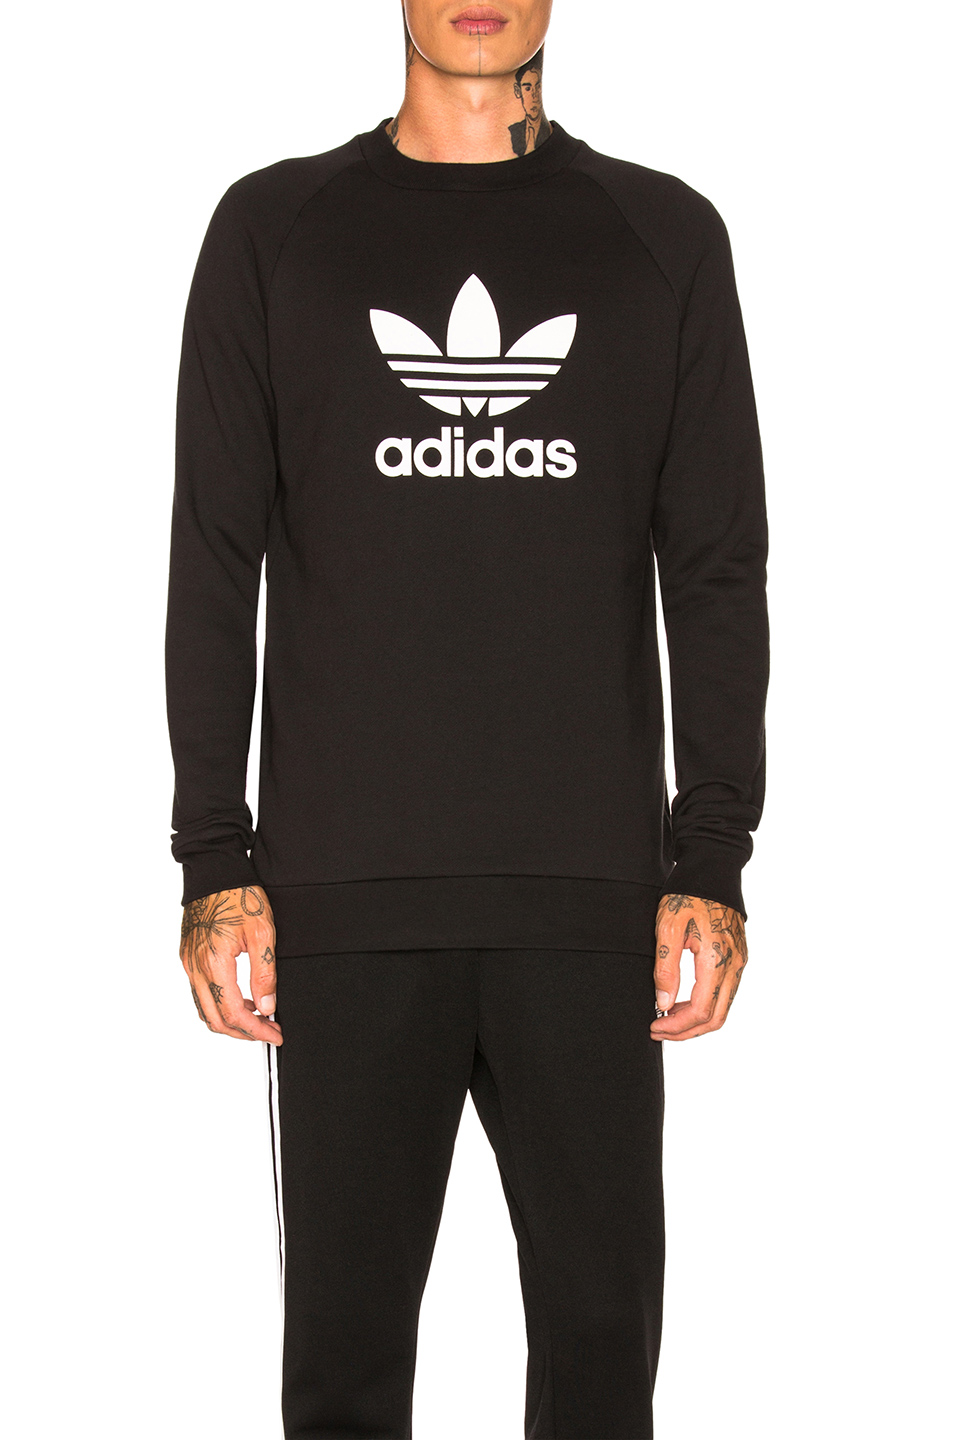 adidas Originals Trefoil Warm Up Crew Sweatshirt